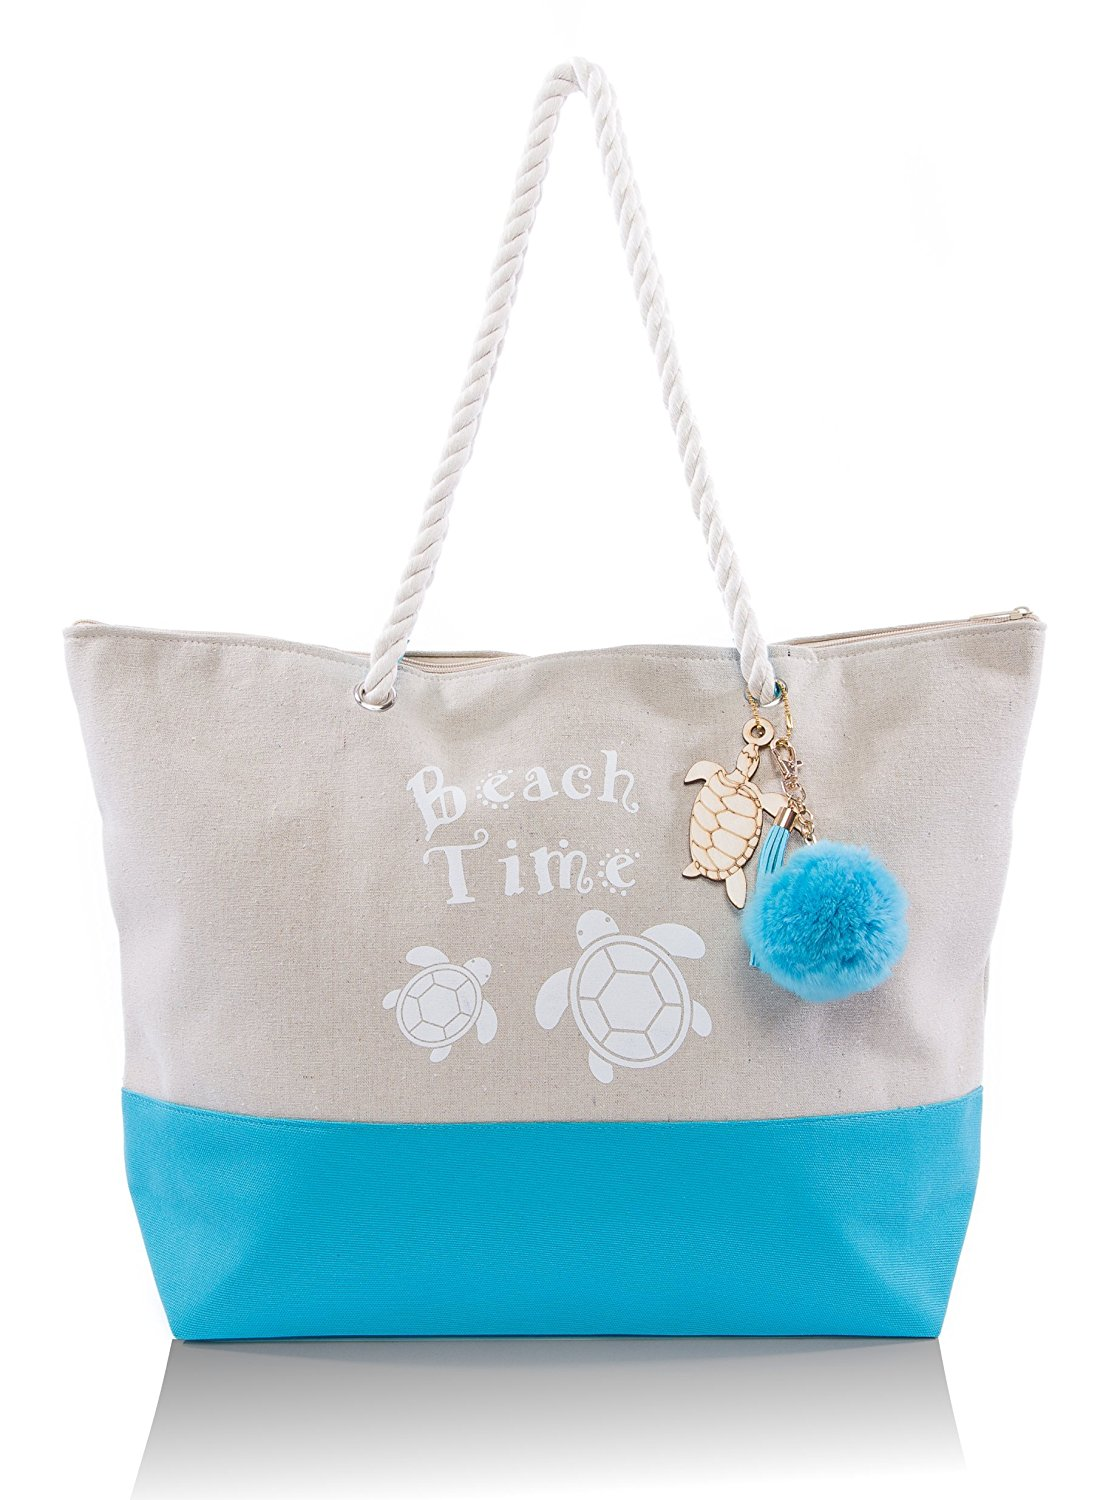 Beach Bag By Pier 17 - Beach Bag for Women with Top Zipper Closure, Rope Handles, 2 Inner Pocket, Tassels and Pom Pom, Nautical Wooden Charm, Built-In Inner Backing for Extra Durability